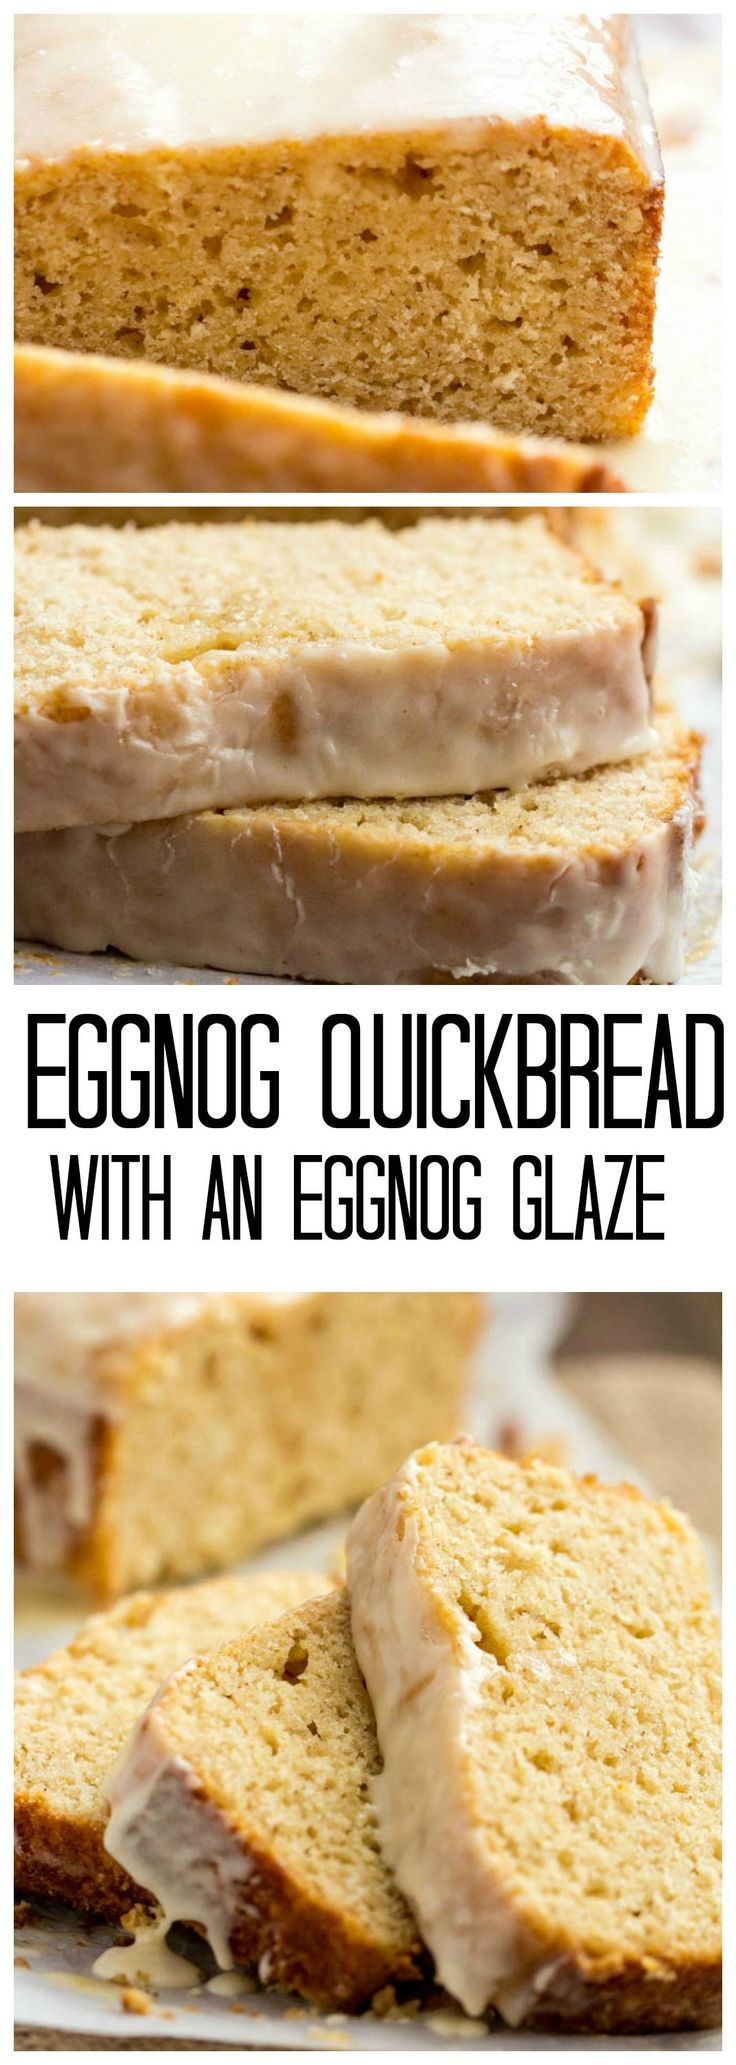 This Eggnog Quickbread is so easy and the most perfectly moist recipe that you will make! The eggnog glaze is perfect on top!...Eggnog Glaze: 1 cup powdered sugar 2-3 Tablespoons eggnog (depending on how thick, thin you want the glaze).